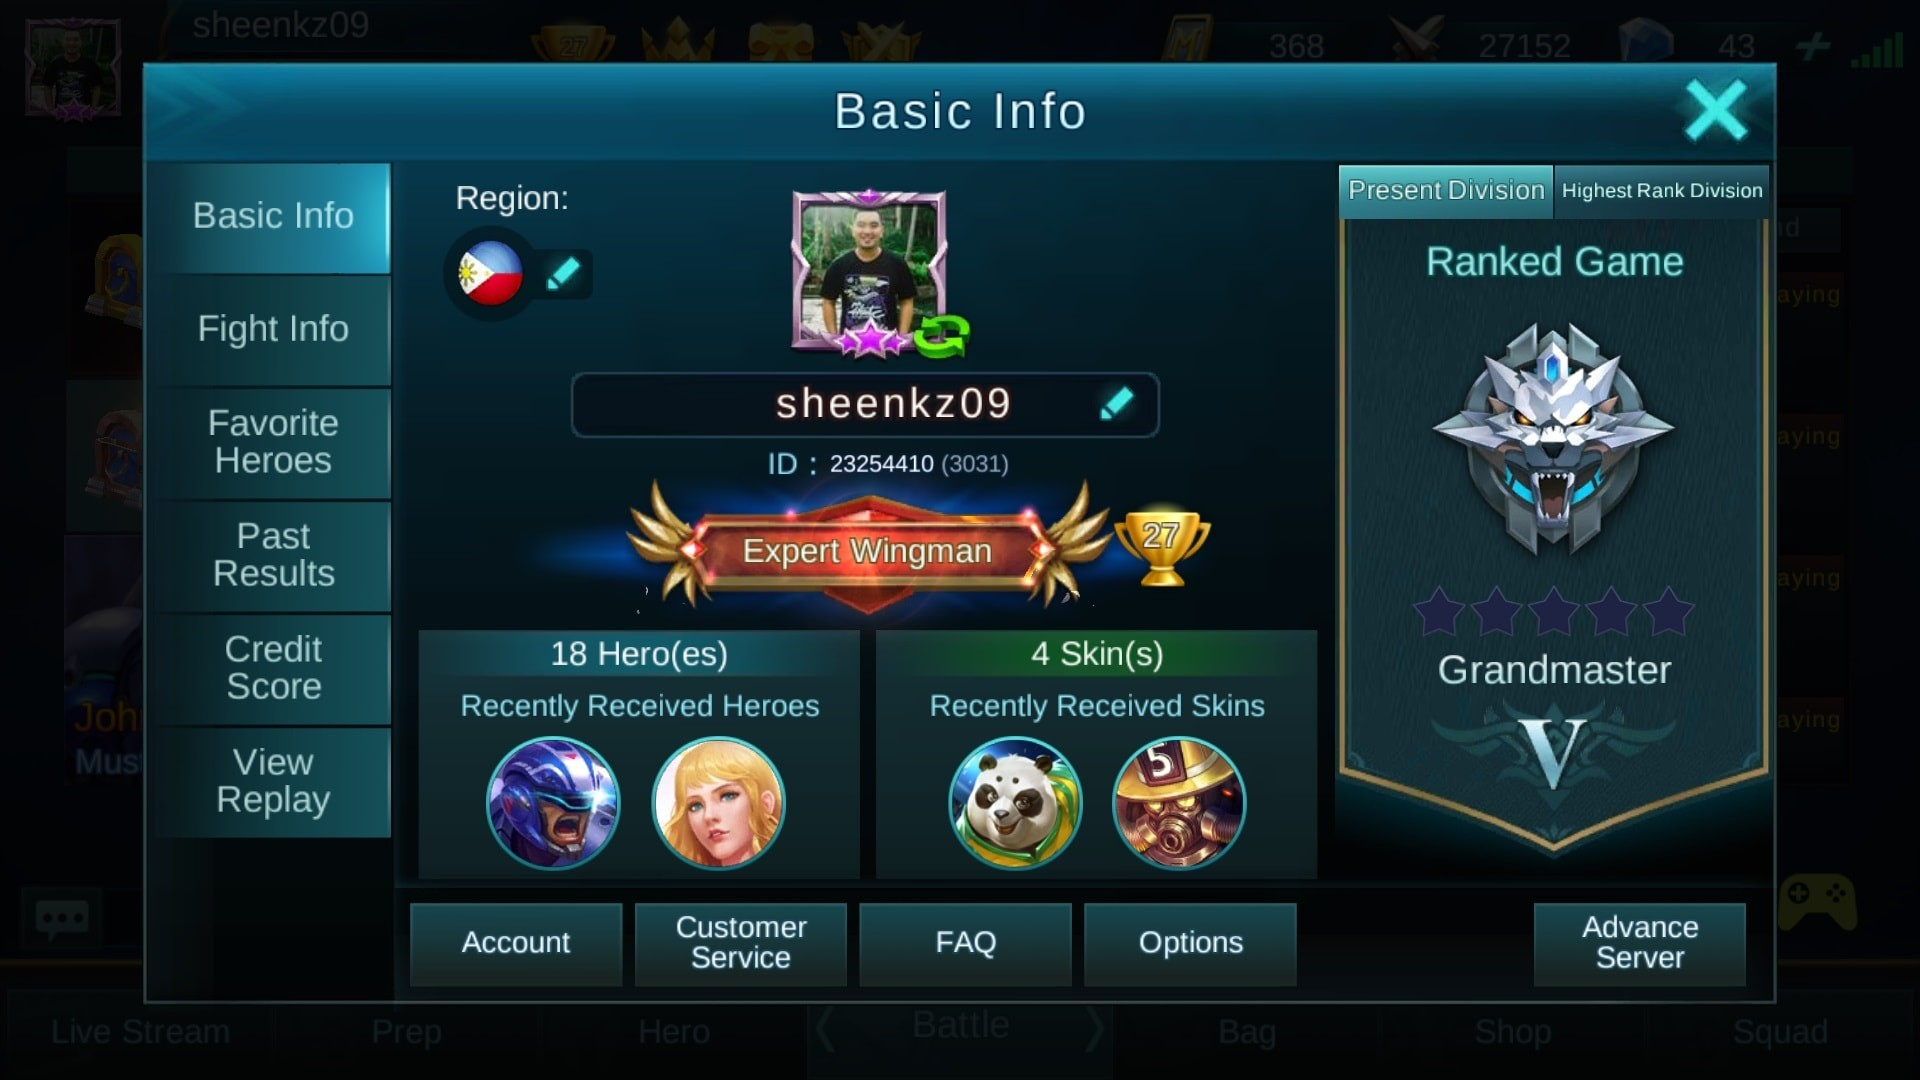 Mobile-Legends-Player-sheenkz09